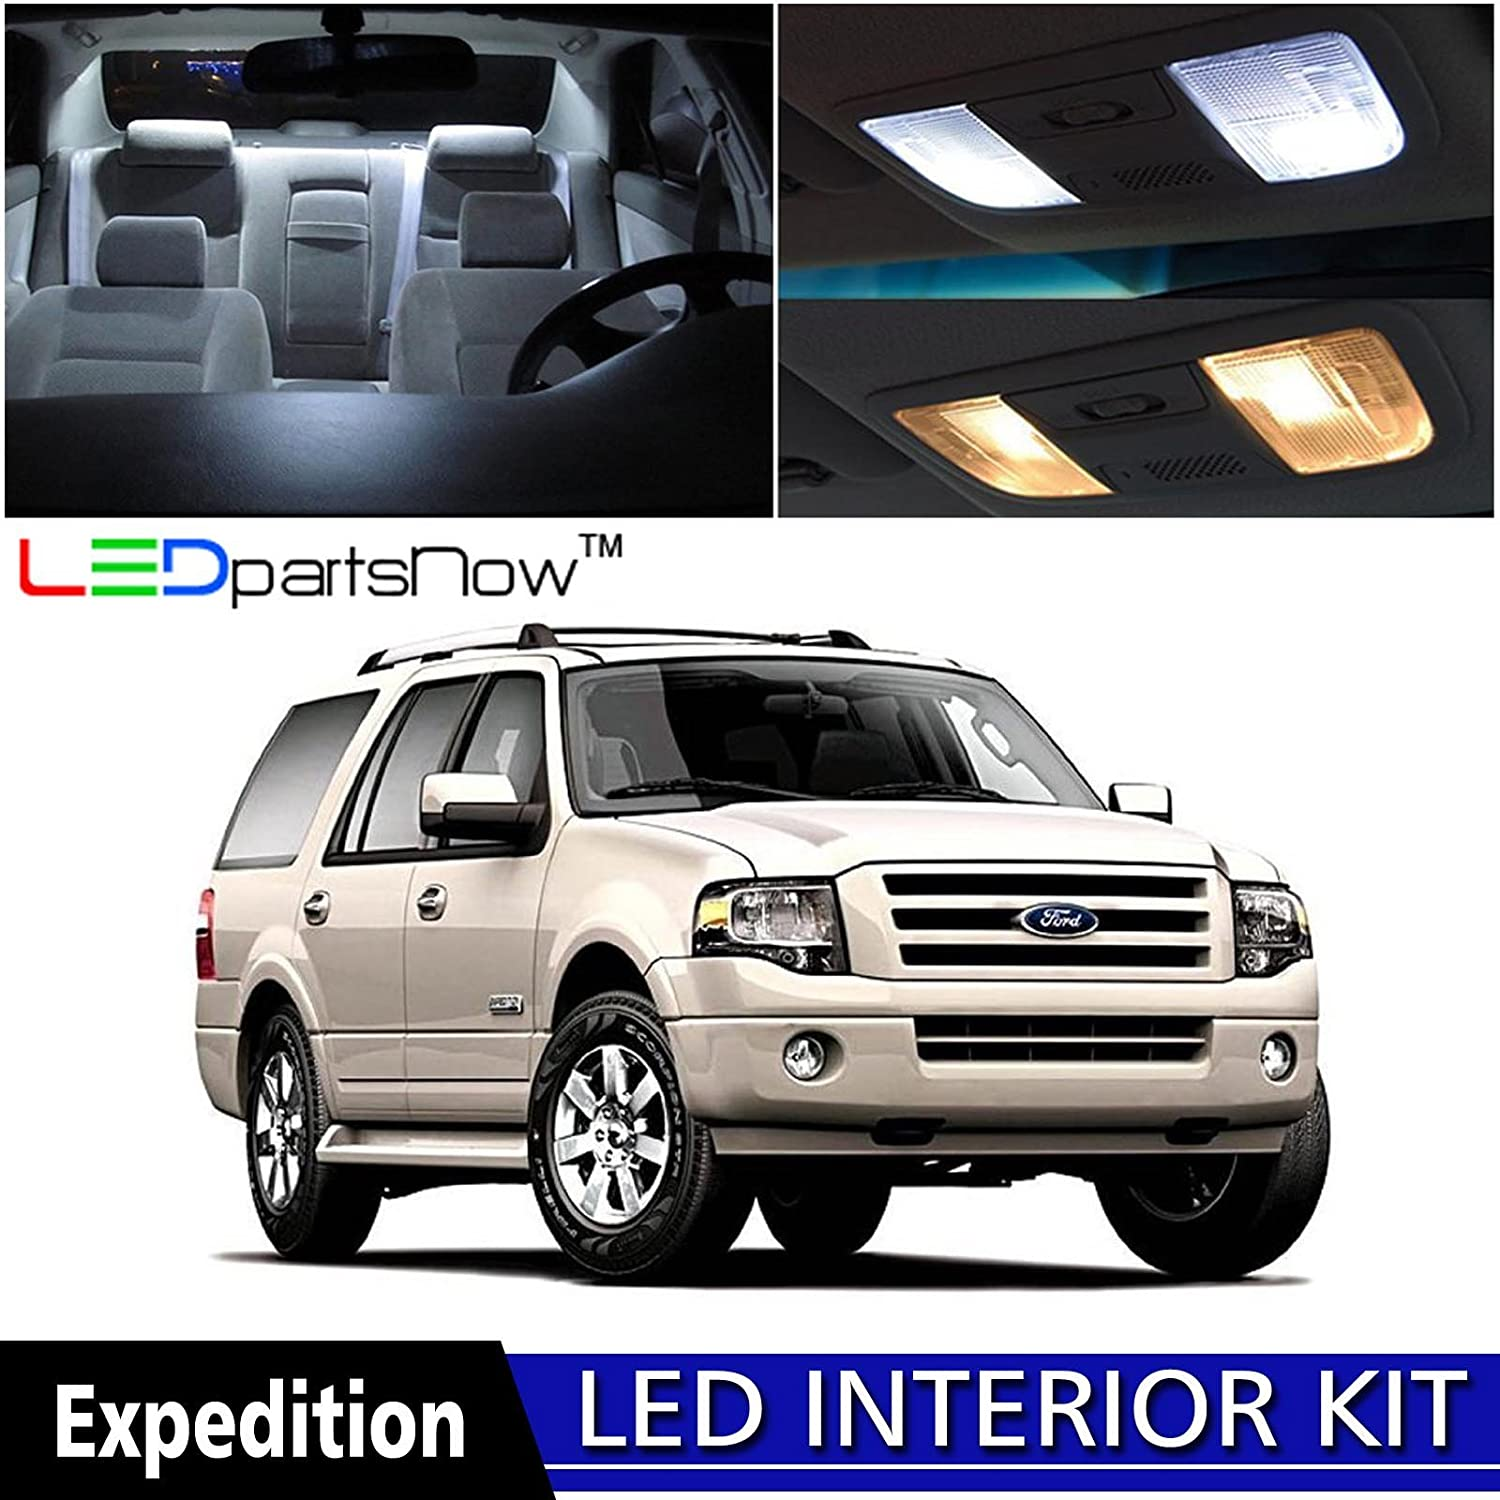 81l%2BQOwe6WL._SL1500_ amazon com ledpartsnow 2003 2013 ford expedition led interior 2004 Ford Expedition Exhaust Schematic at eliteediting.co